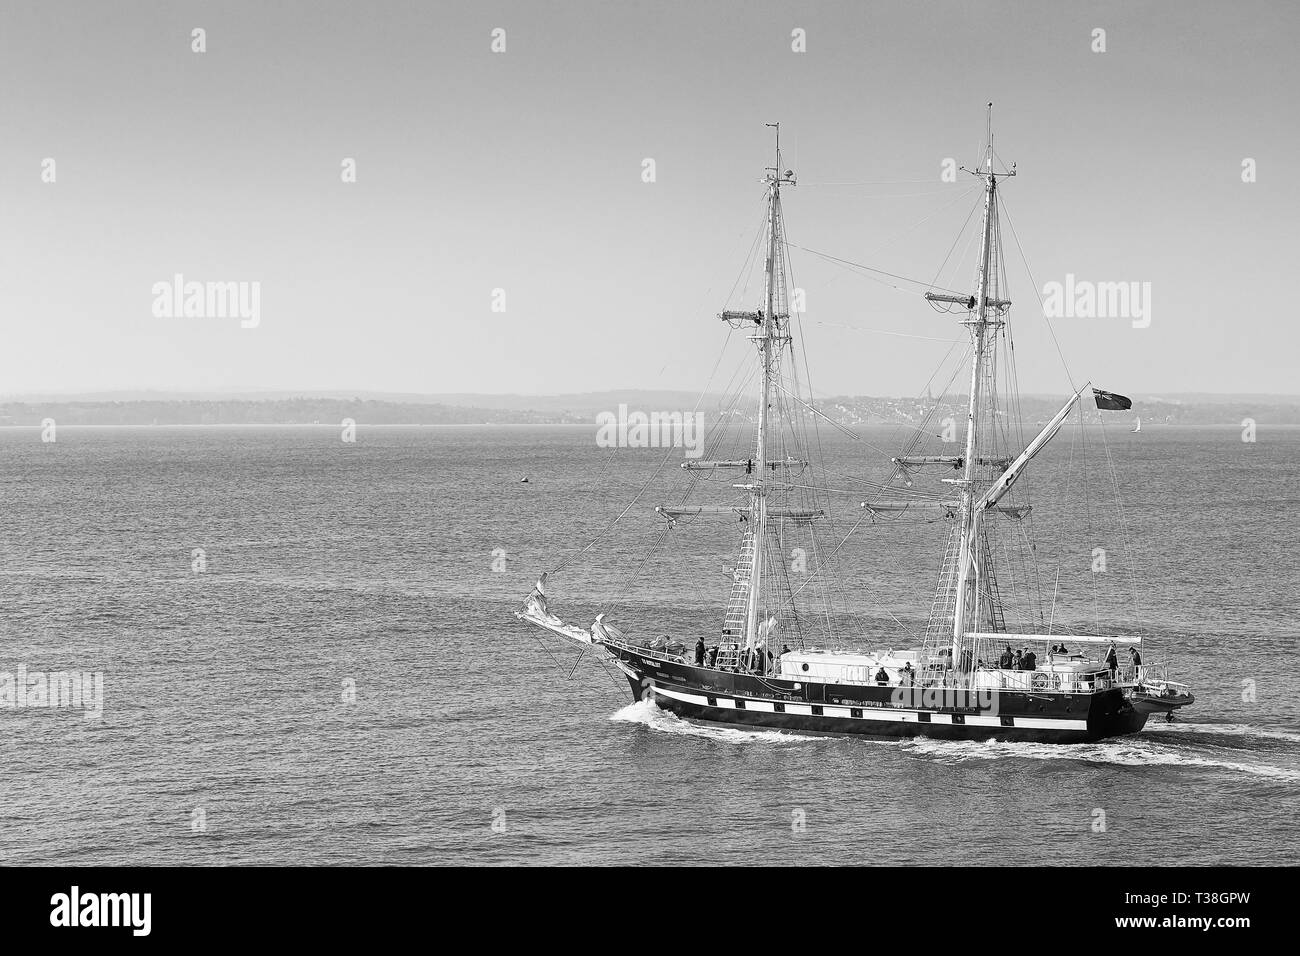 Black And White Photo Of The Tall Ship, TS ROYALIST, Underway, As She Leaves Portsmouth Harbour, UK. 01 April 2019. - Stock Image